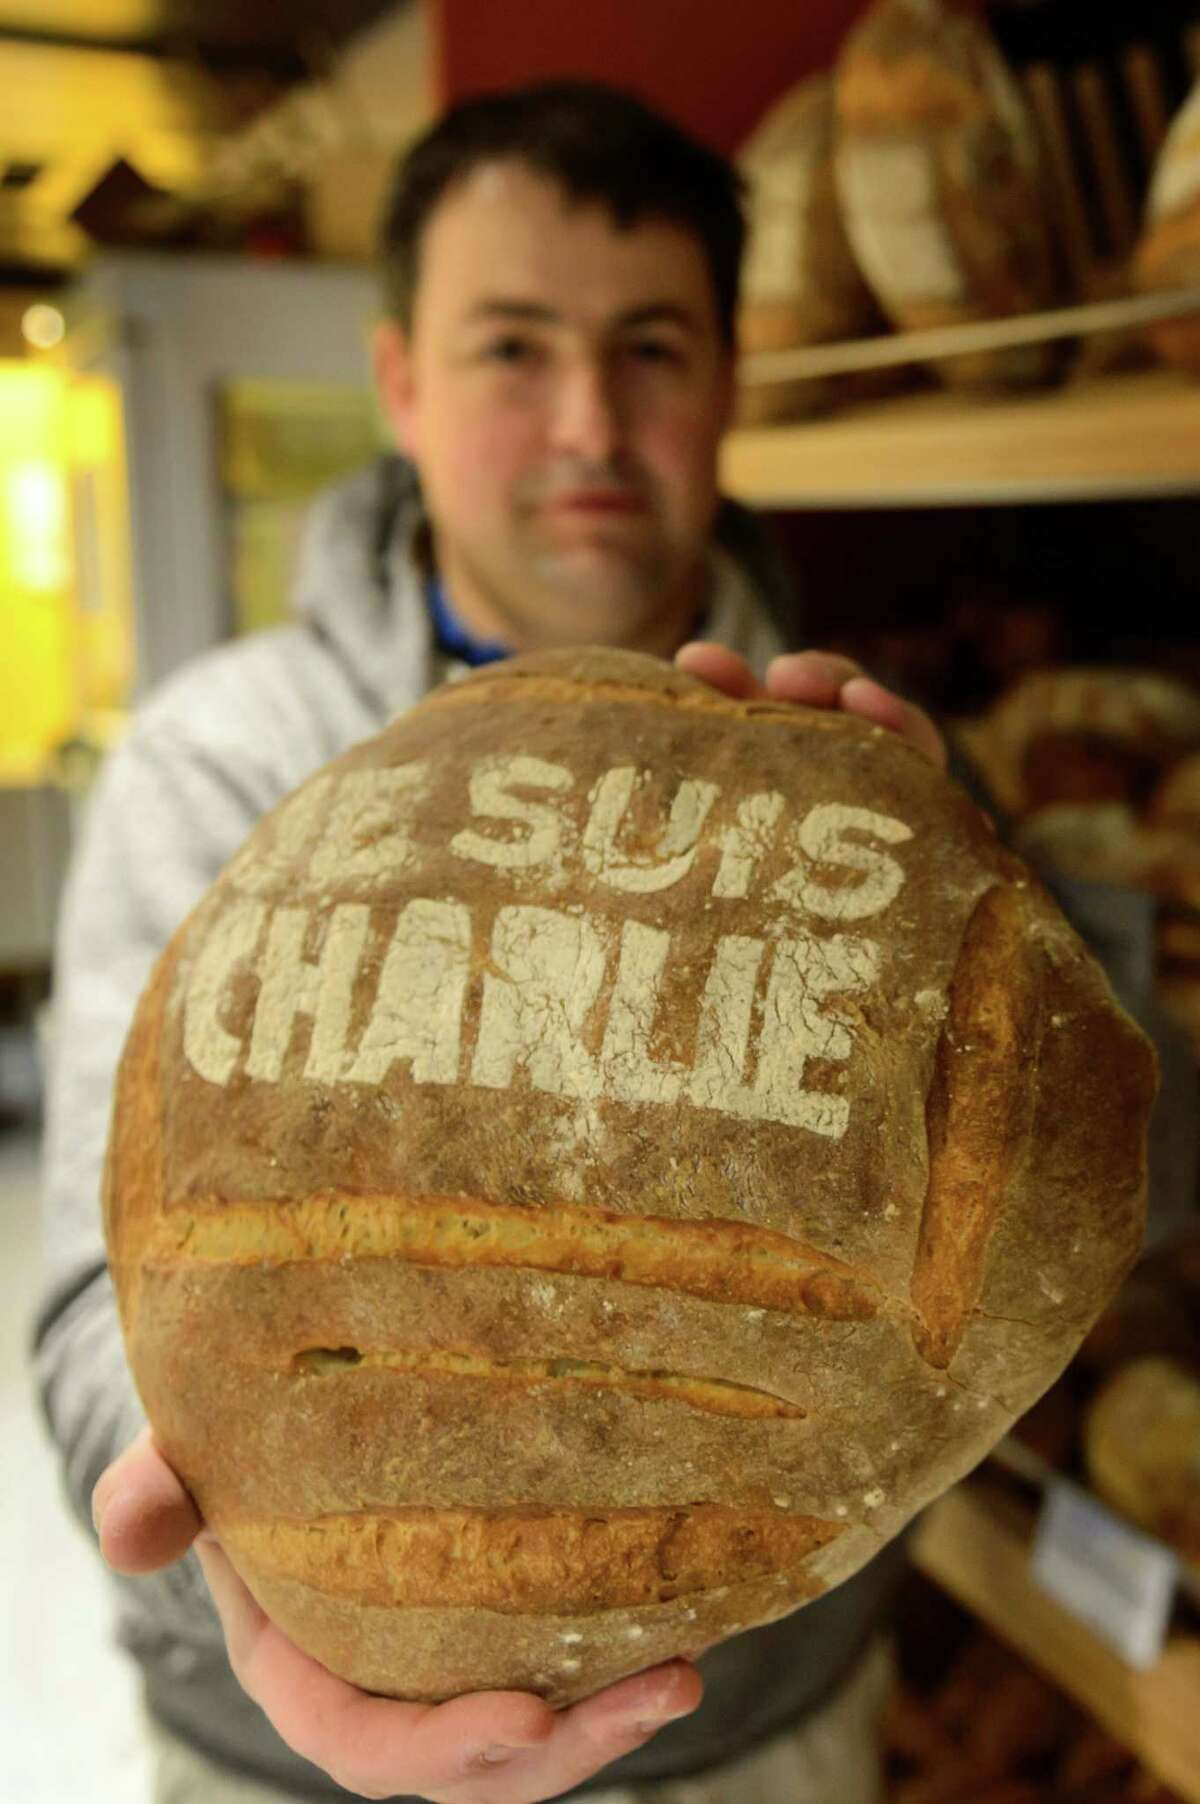 """Baker Pascal Clement holds a loaf of bread with """"Je suis Charlie"""" (I am Charlie) written on it in commemoration to the victims of Charlie Hebdo newspaper, Friday, Jan. 9, 2015, in Daillens, Switzerland. Masked gunmen stormed the Paris offices of the weekly newspaper that caricatured the Prophet Muhammad, methodically killing 12 people at the offices of the paper, Wednesday, including the editor, before escaping in a car. It was France's deadliest postwar terrorist attack. (AP Photo/Keystone, Laurent Gillieron)"""